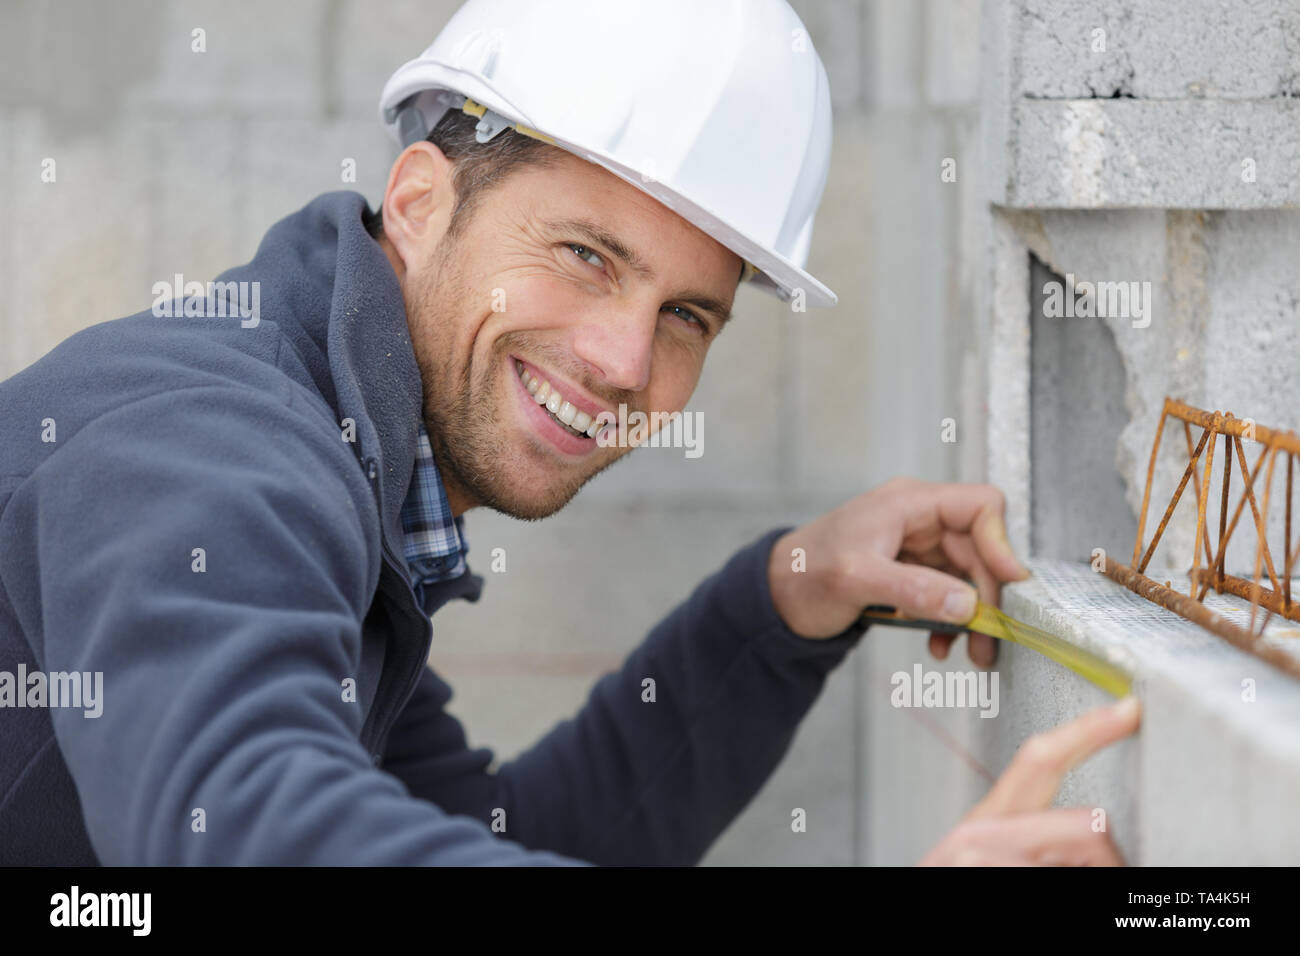 man working on concrete structure - Stock Image